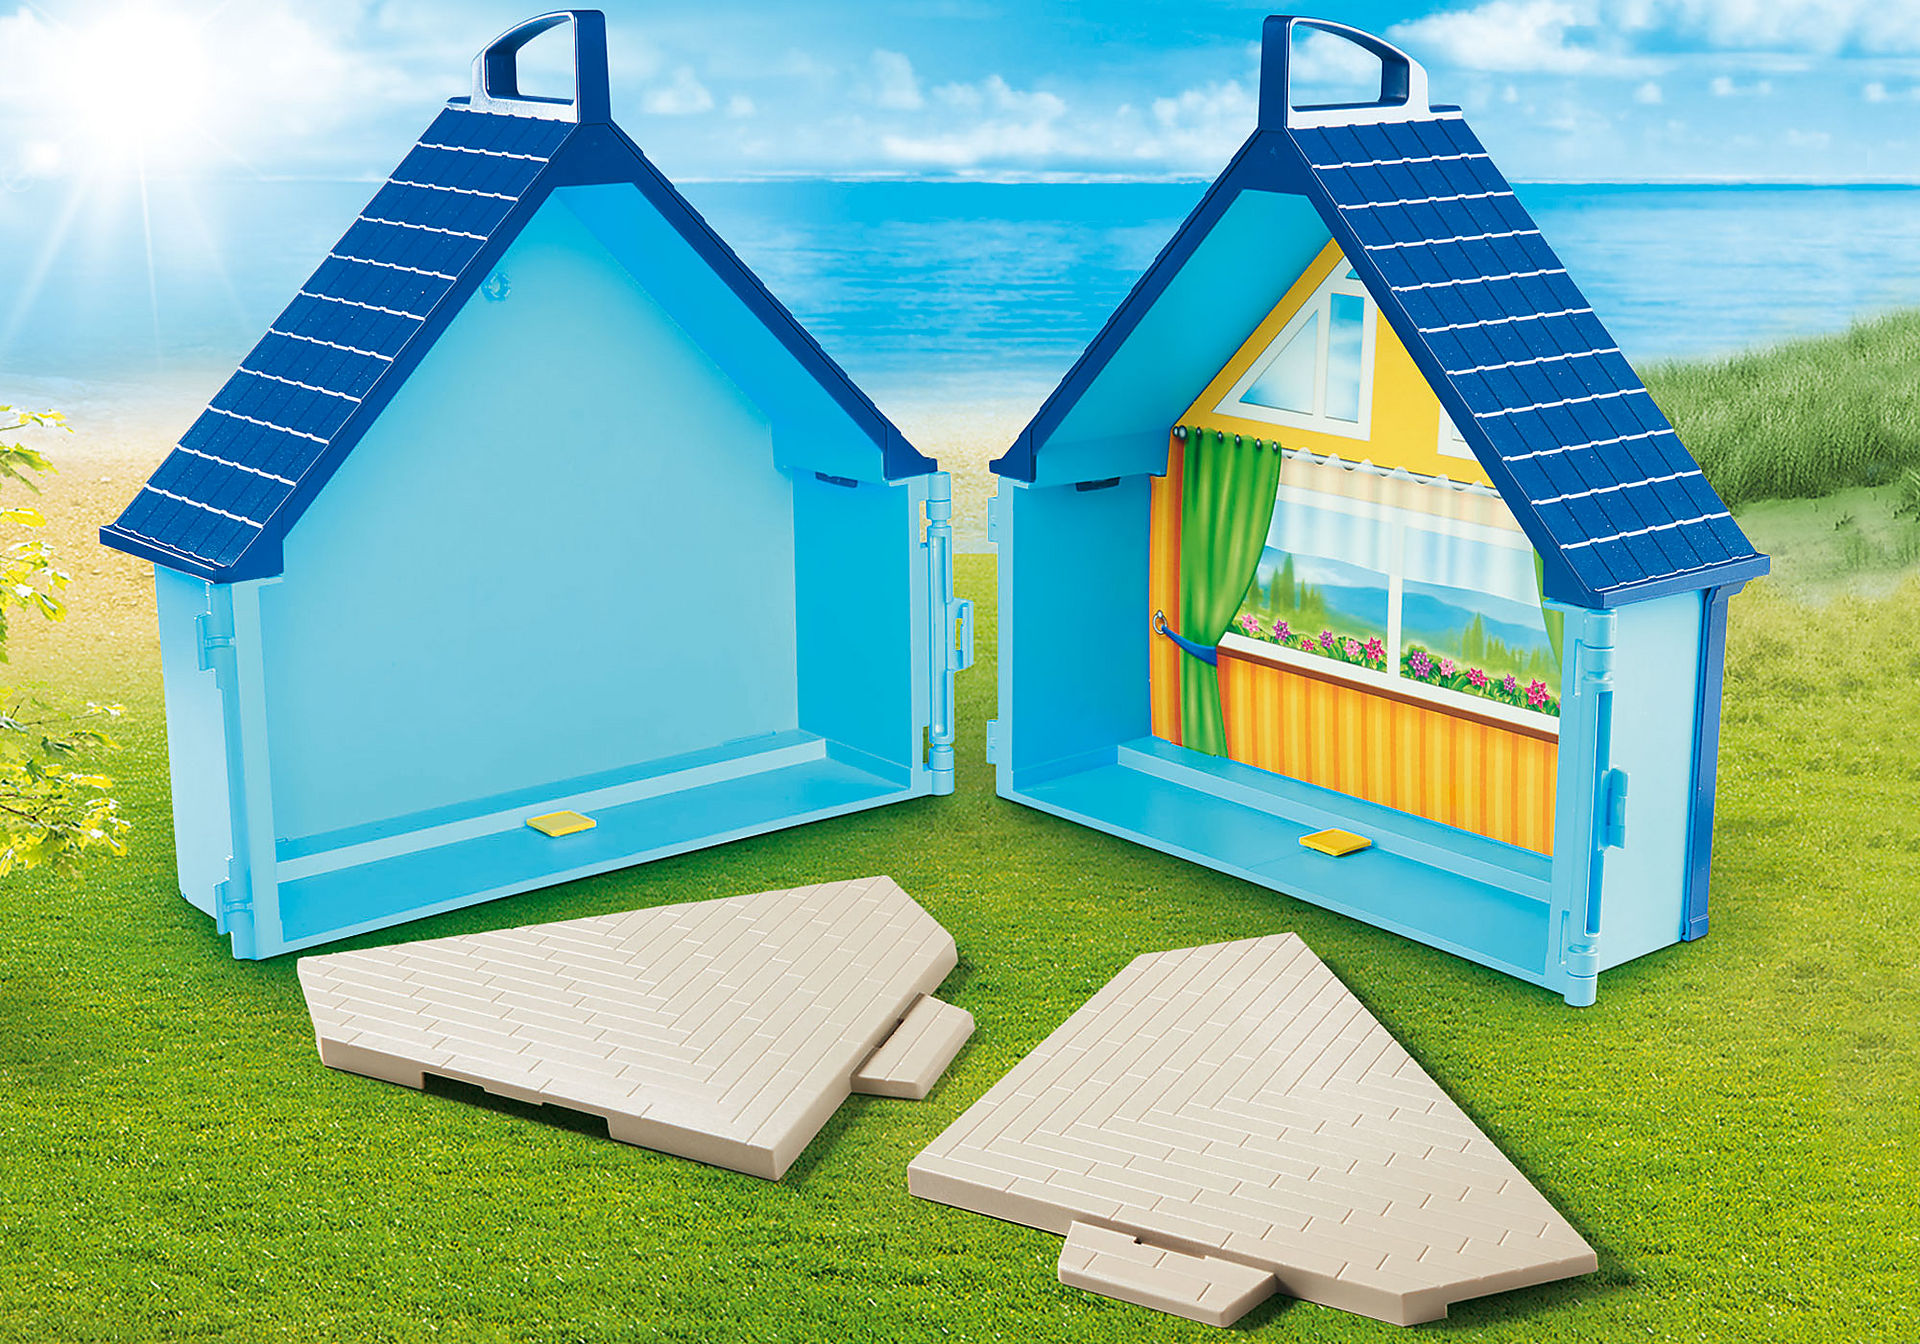 70219 PLAYMOBIL-FunPark Summerhouse Playbox zoom image6